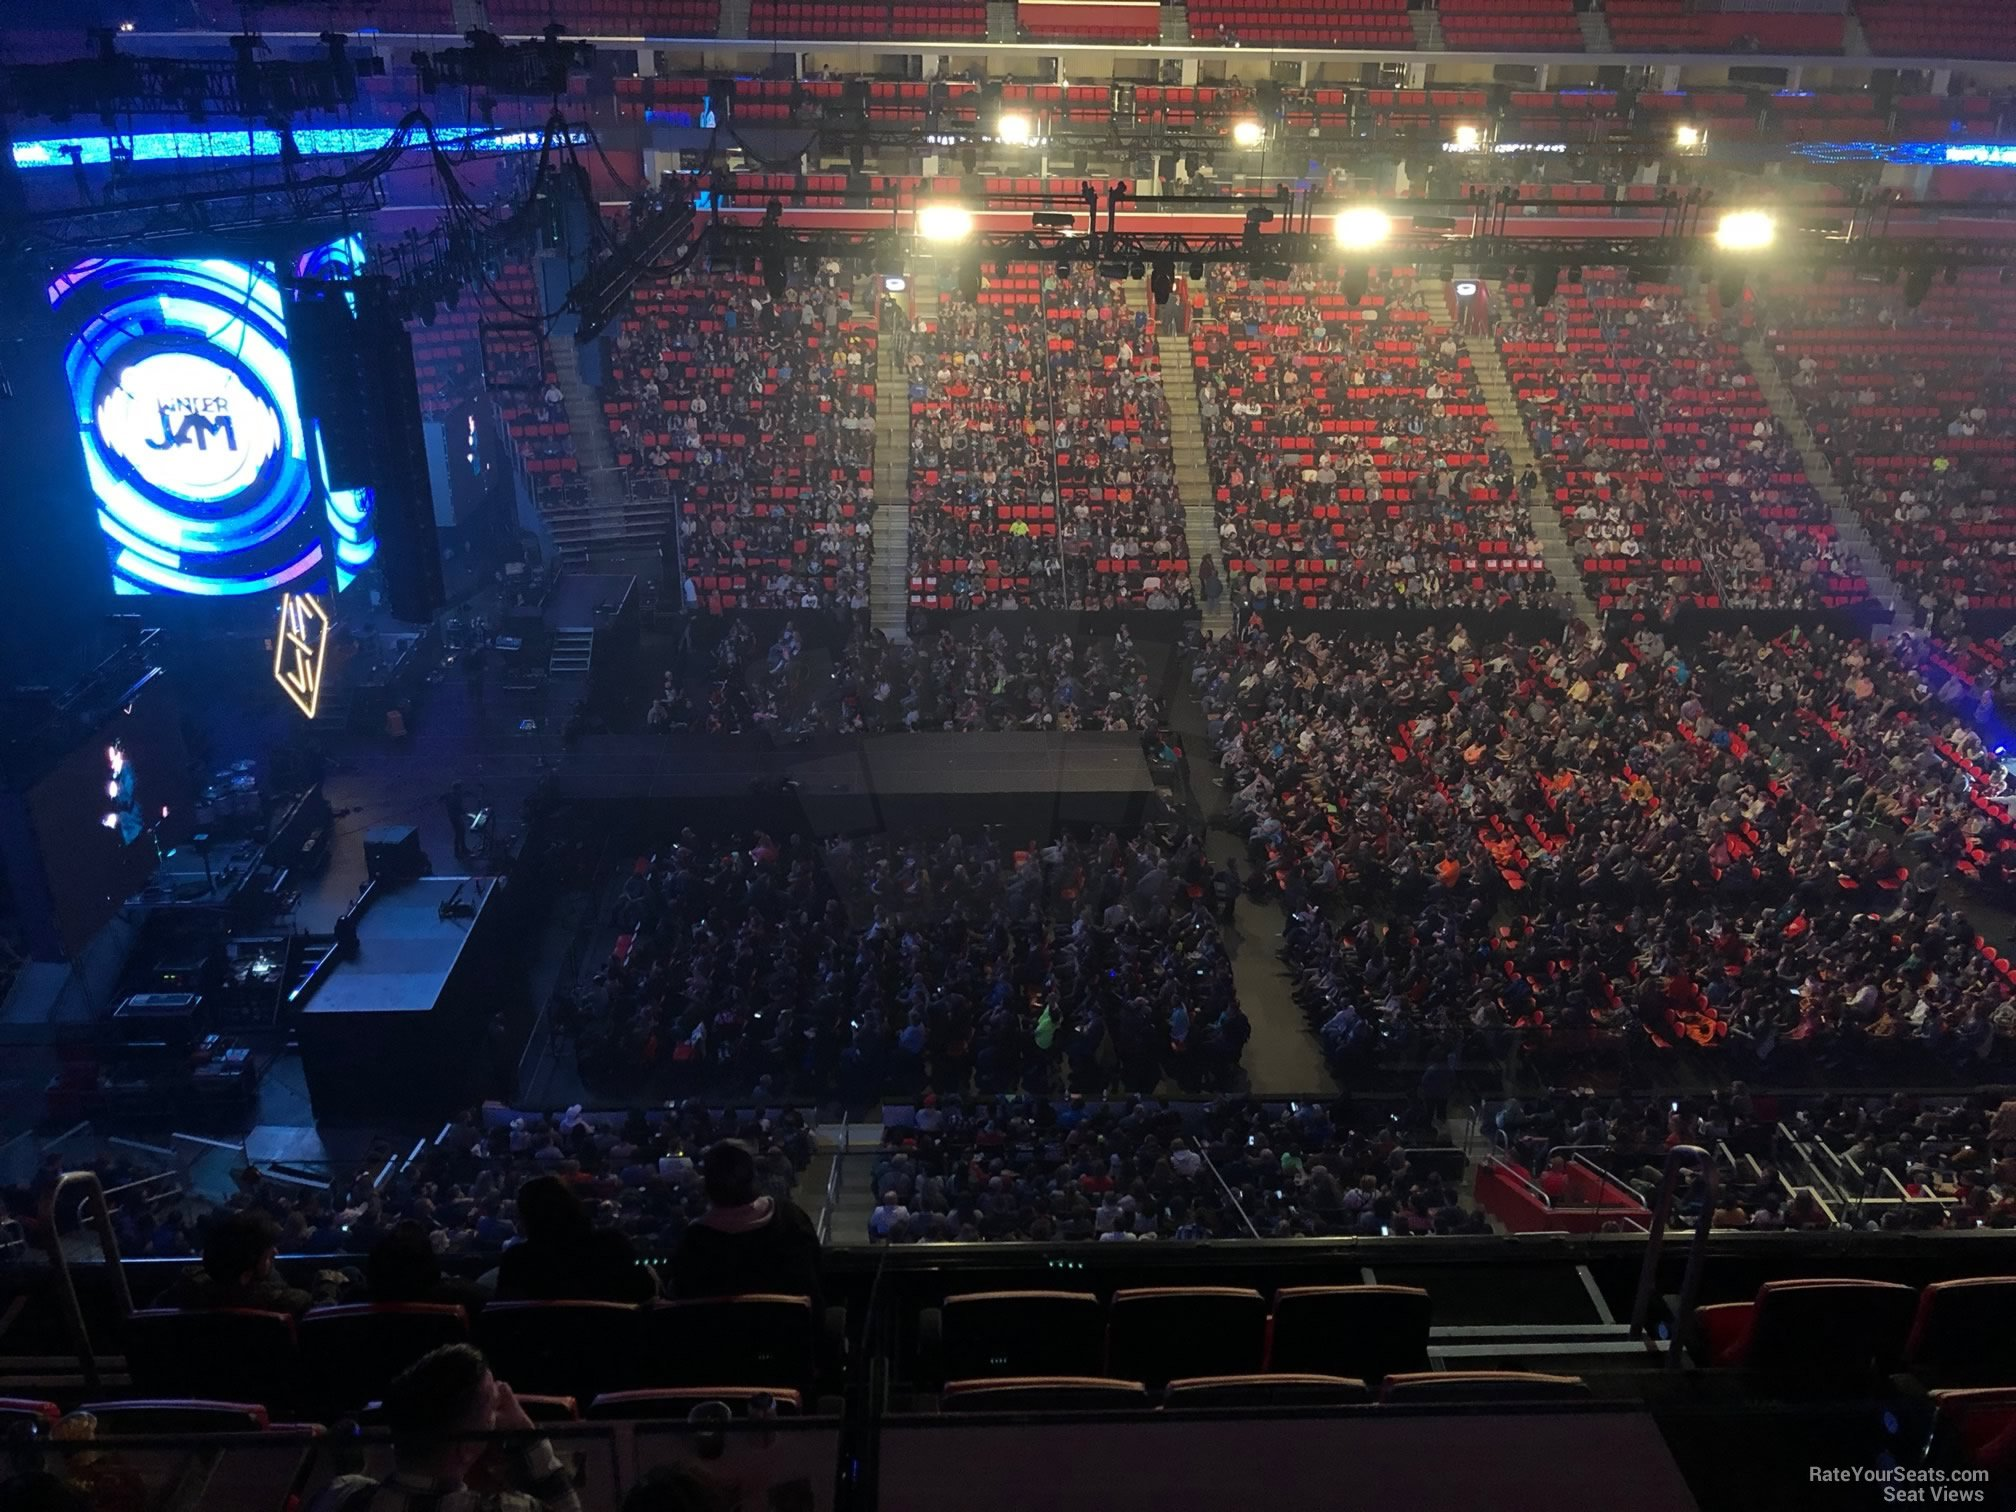 Concert Seat View for Little Caesars Arena Mezzanine 30, Row 2